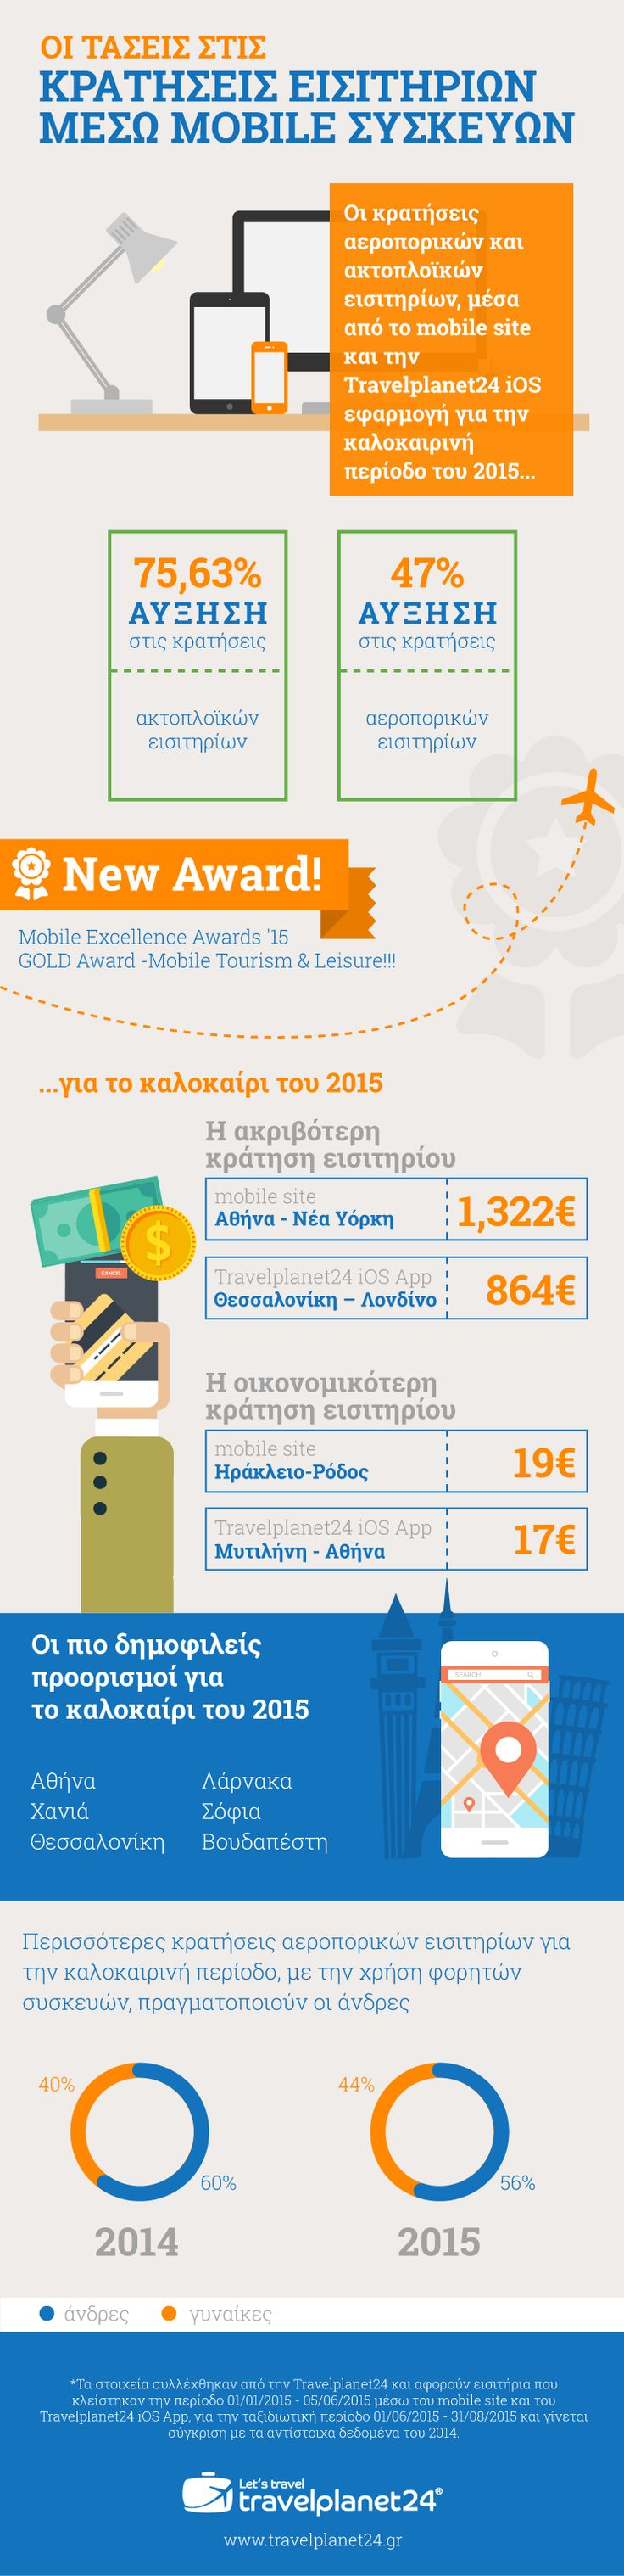 Mobile Trends in Greece #travelplanet24 #infographic